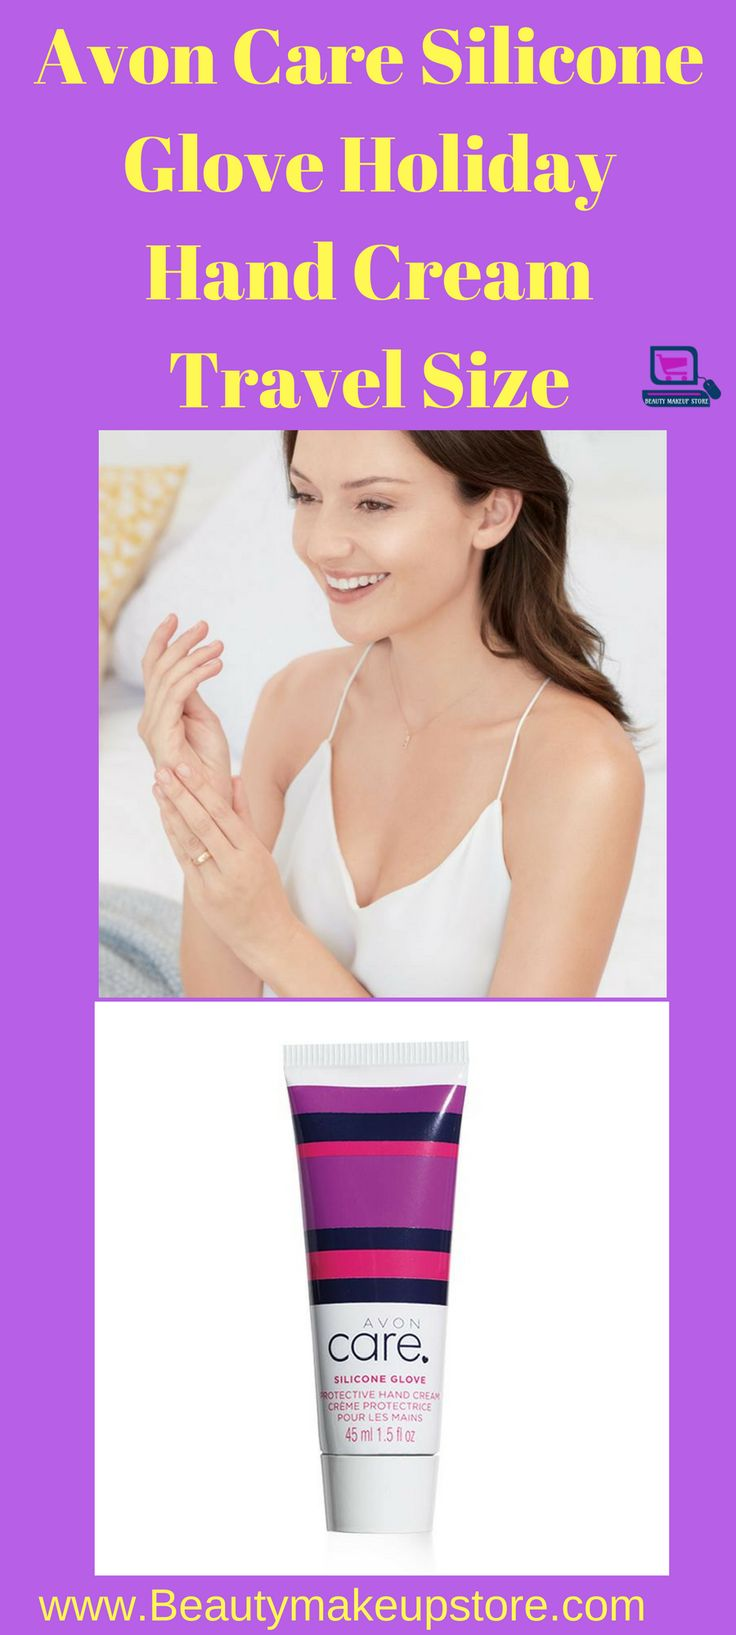 Avon Care Silicone Glove Holiday Hand Cream Travel Size #handcream #handcreamandlotion #buybeautyproducts hand cream | hand cream diy | hand cream homemade | hand cream packaging | hand cream gift ideas | sophie | Jill Parker | LacQuin Hand Cream | Hand Cream | Hand Cream | Hand Cream |